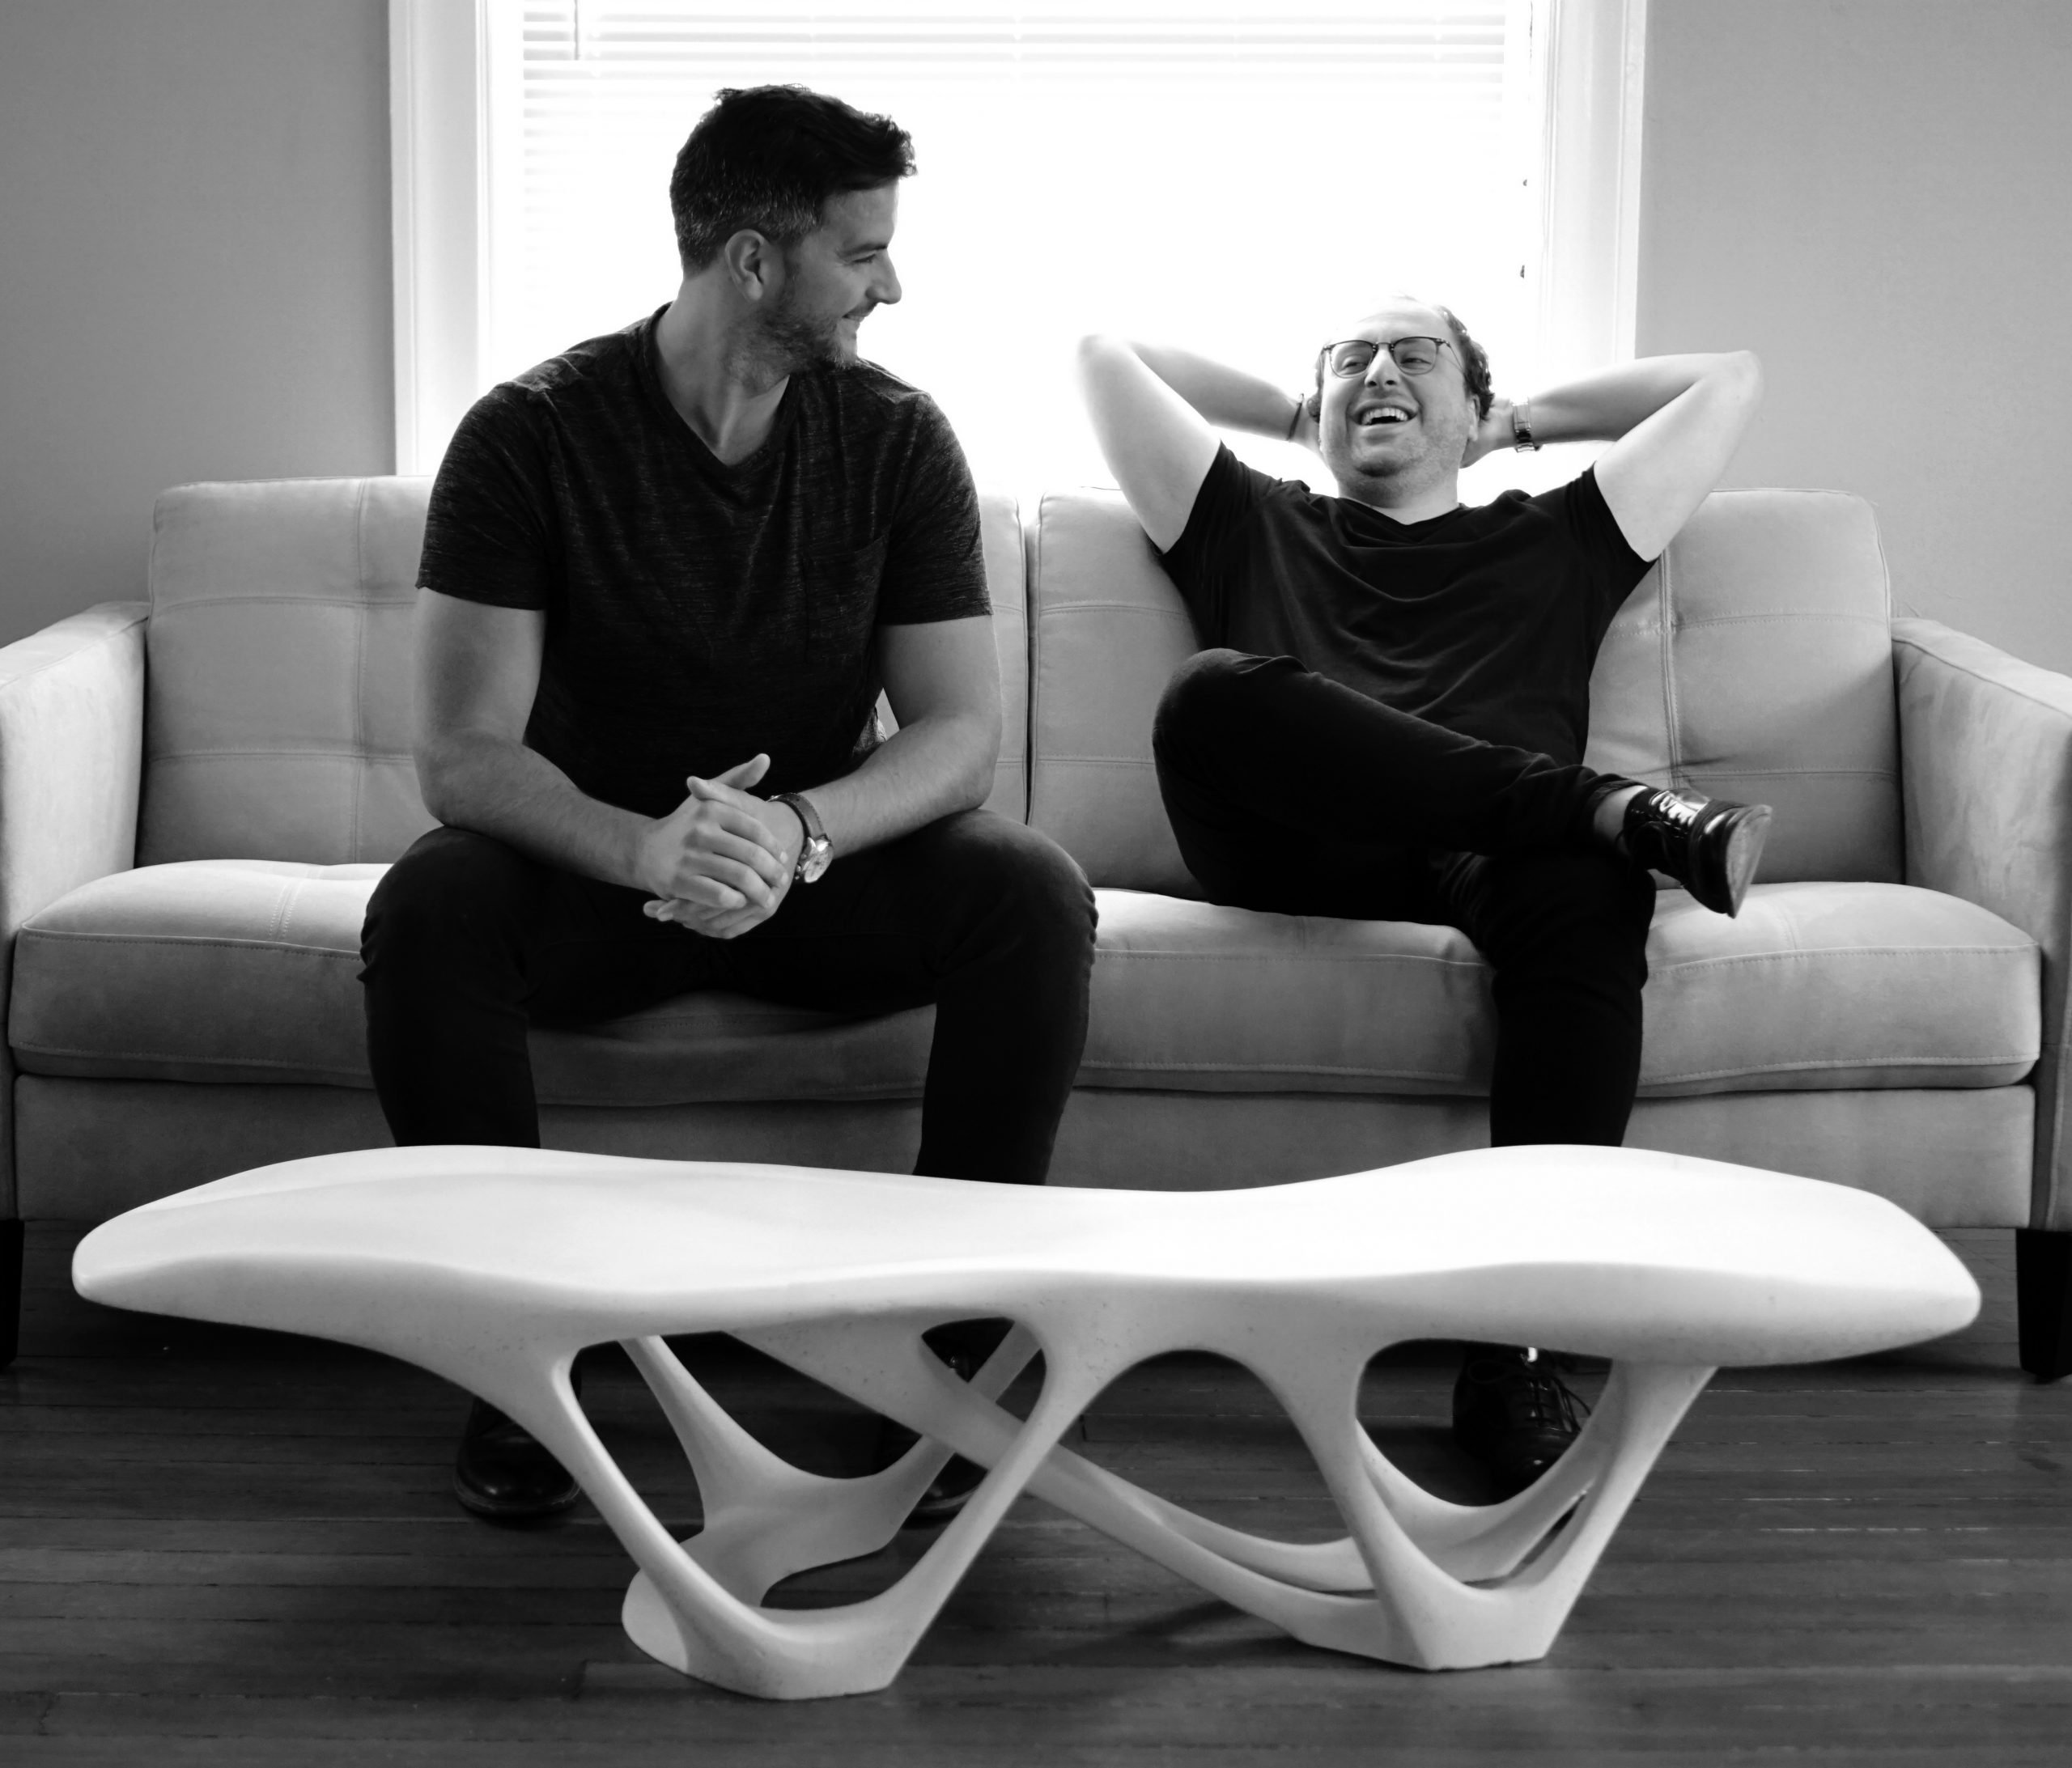 Slicelab shows Delicate Density Table in 3D printed concrete